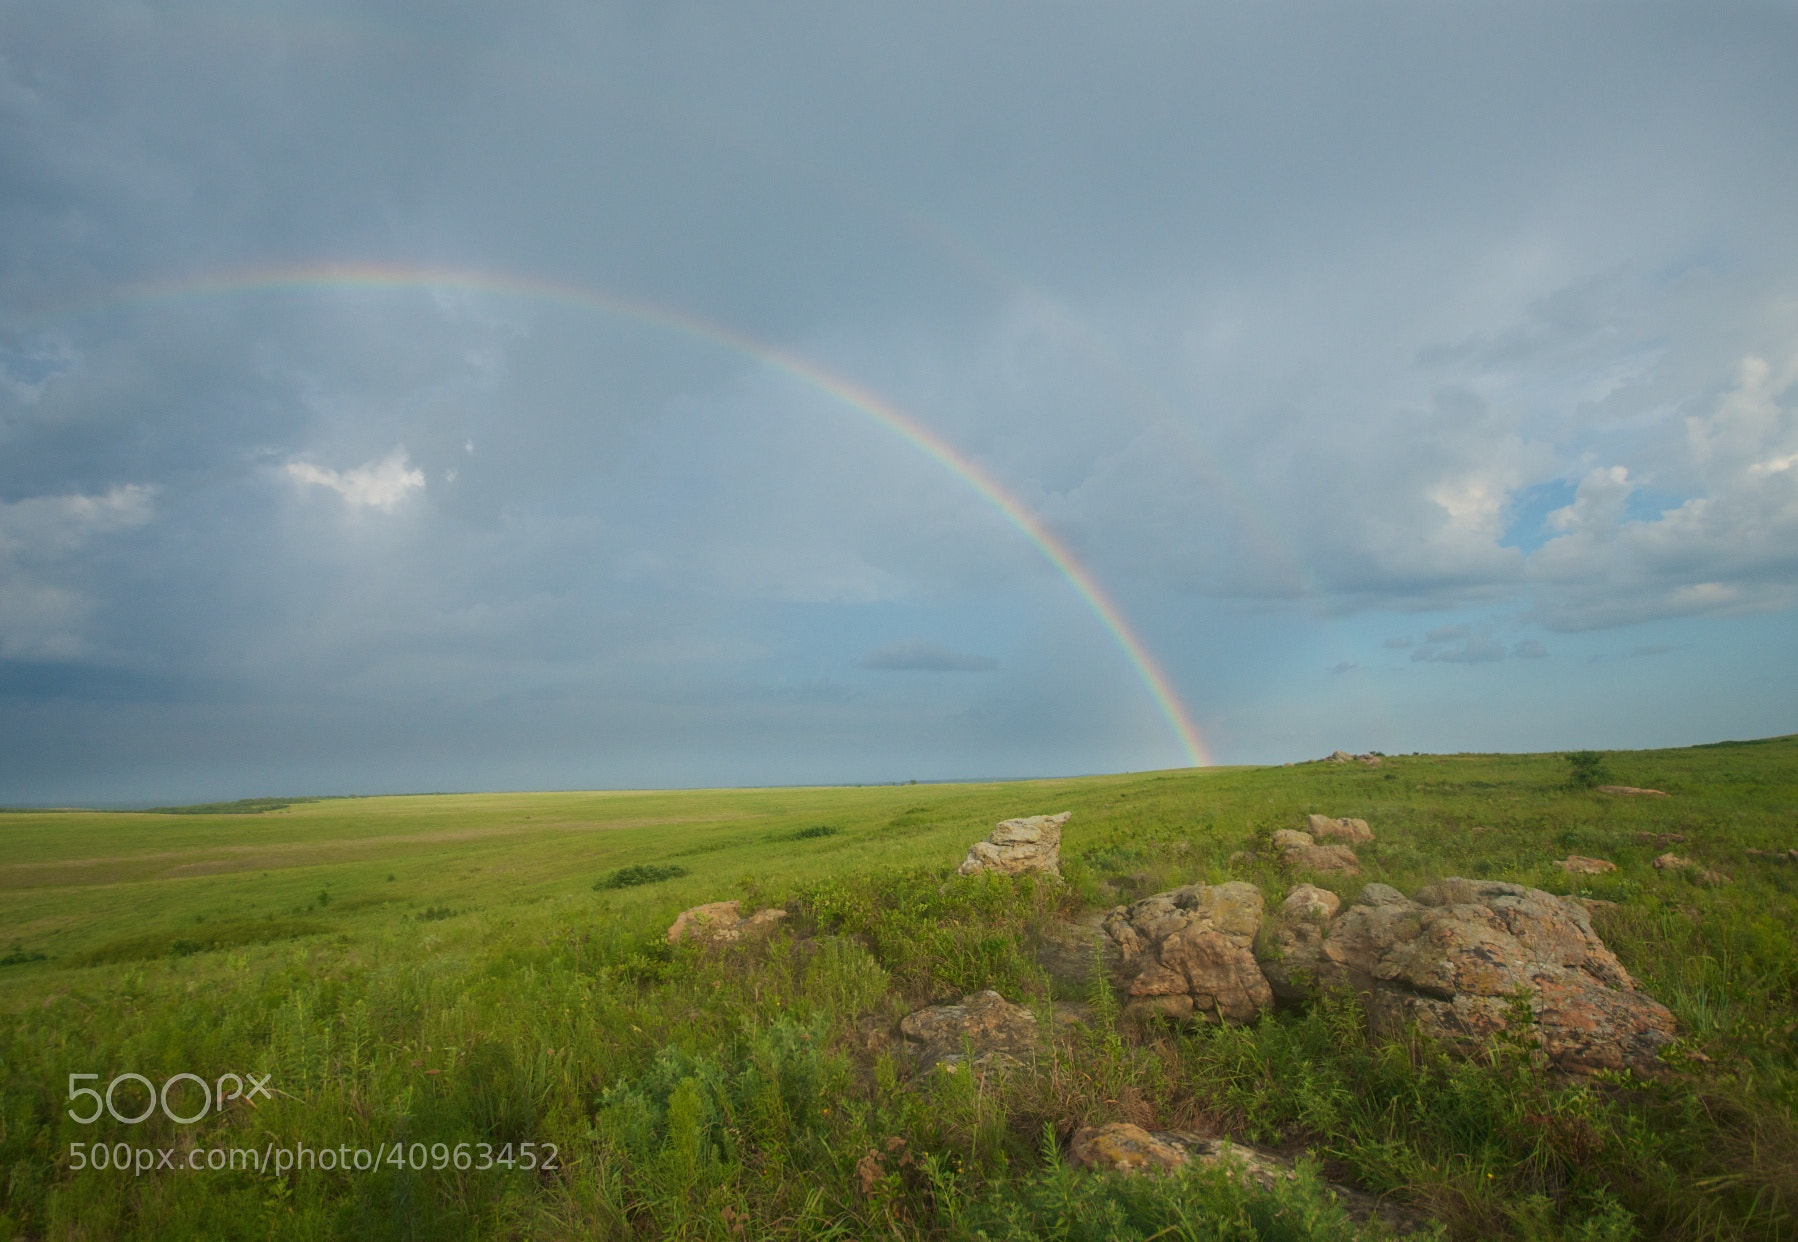 Photograph Rainbow over the Tallgrass by Mike Fuhr on 500px